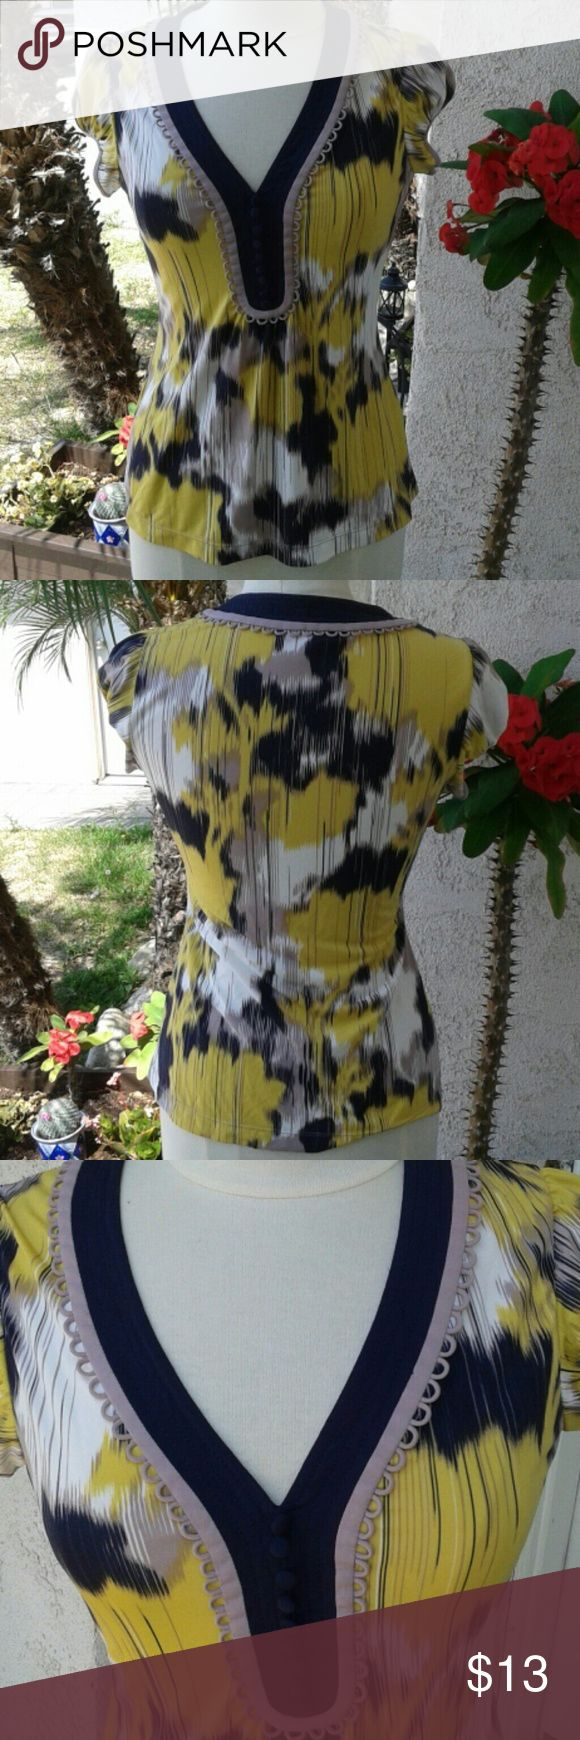 Very cute Small BCBGMaxazria top. Very cute summer top. It has  9 decorative buttons on the front. Worn once. BCBGMaxAzria Tops Blouses